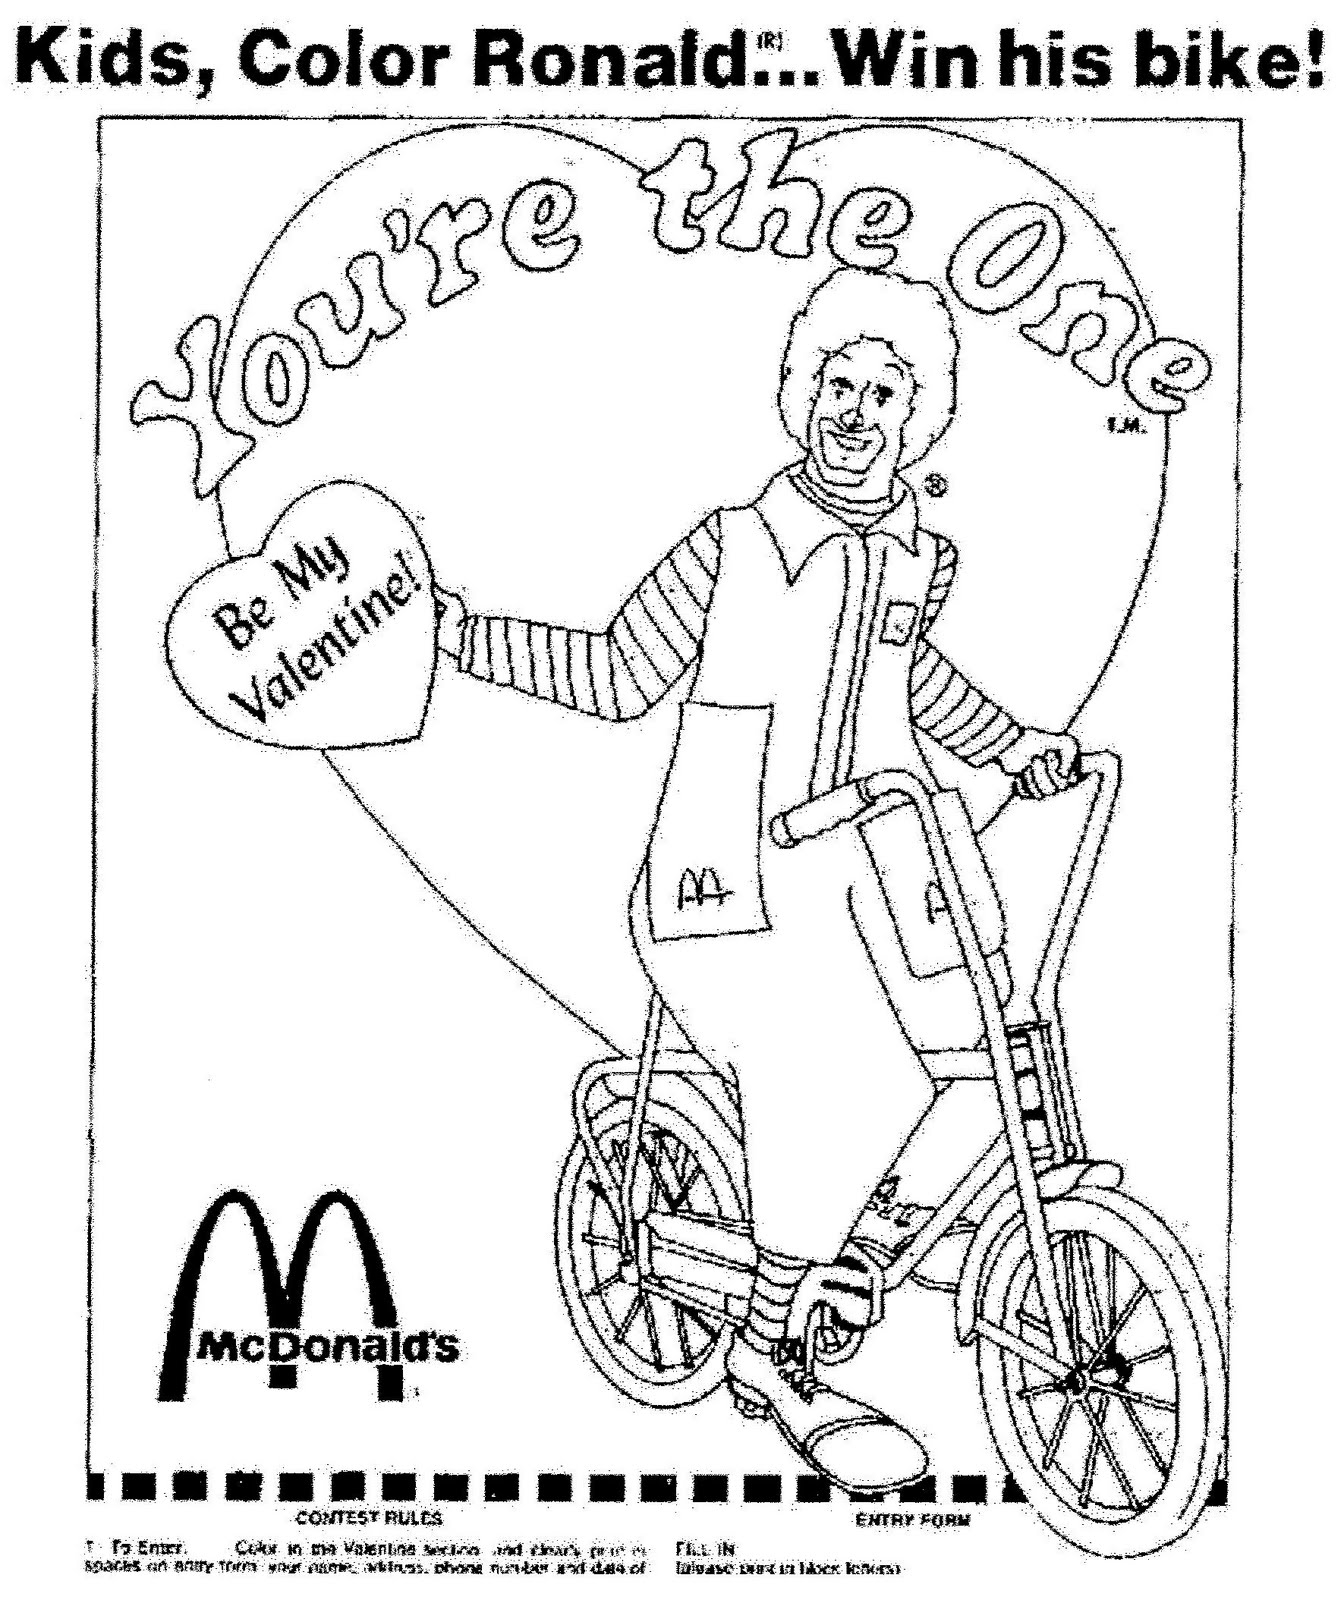 23 Mcdonalds Coloring Pages Images | FREE COLORING PAGES - Part 2